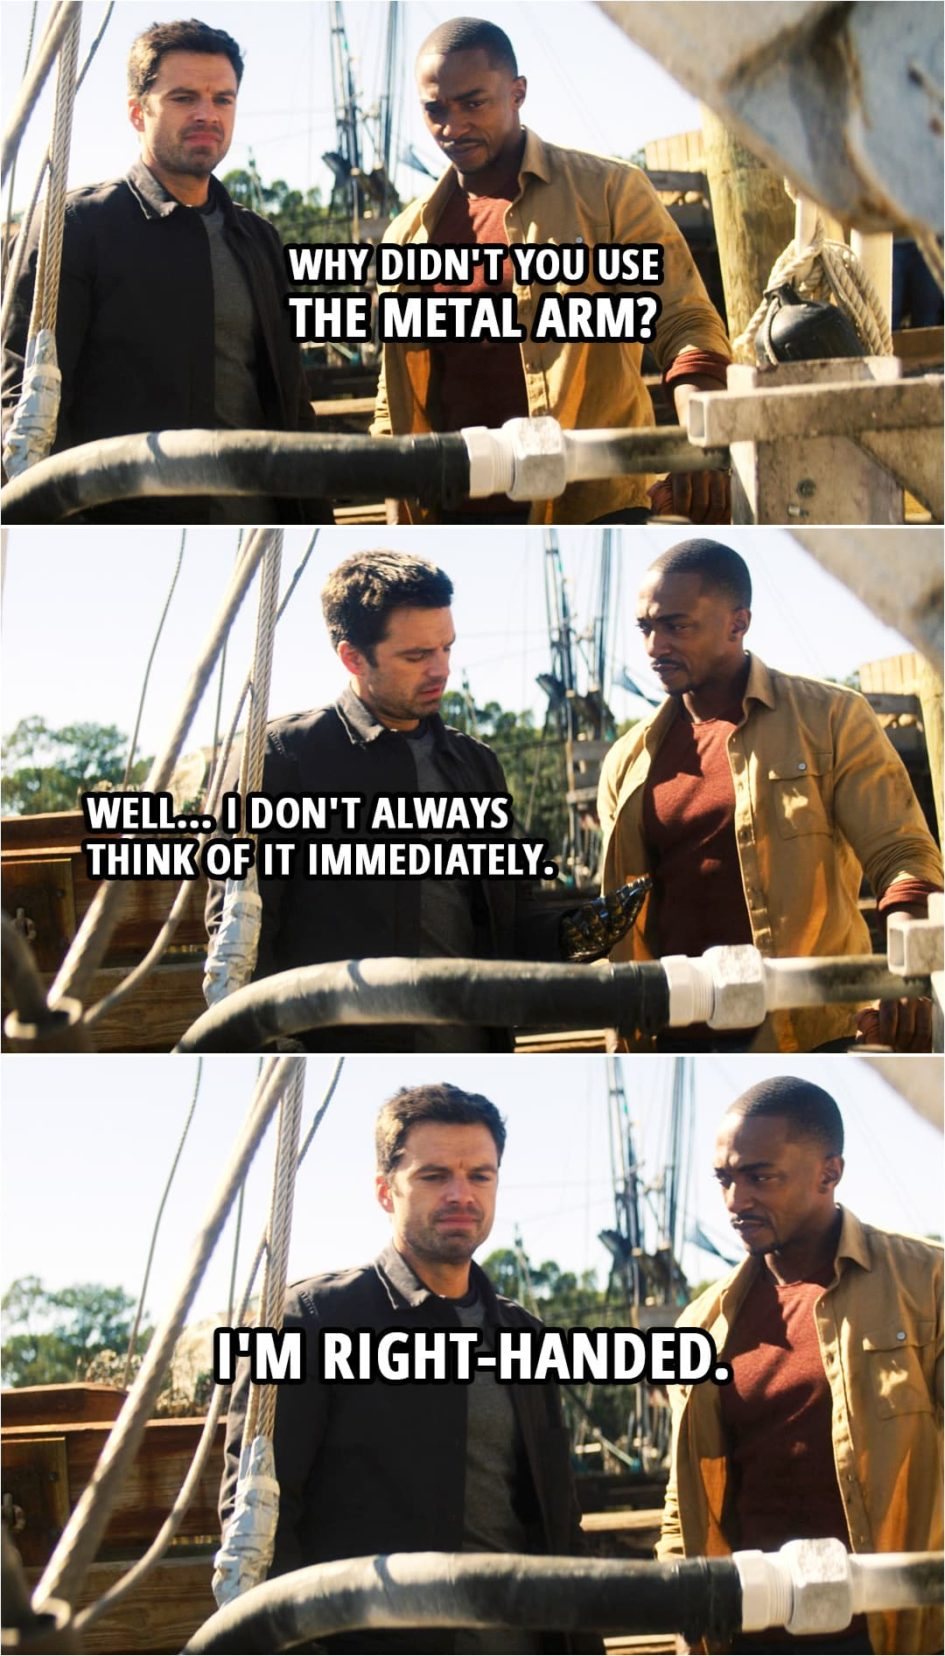 Quote from The Falcon and The Winter Soldier 1x05 | Sam Wilson: Why didn't you use the metal arm? Bucky Barnes: Well... I don't always think of it immediately. I'm right-handed.